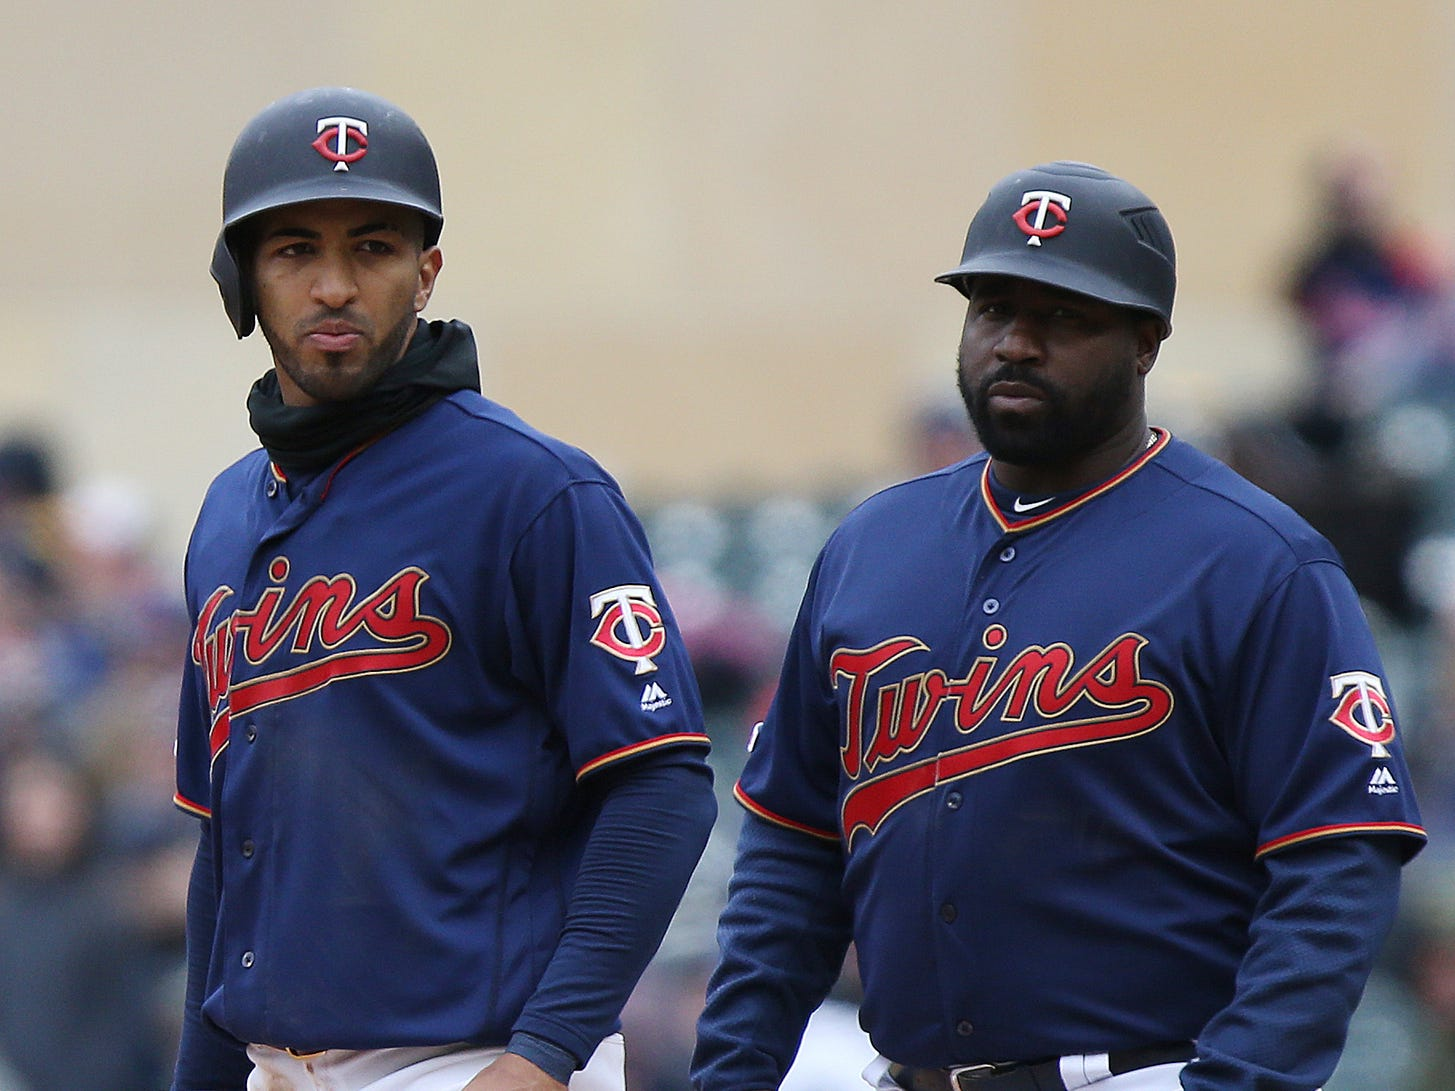 Minnesota Twins' Eddie Rosario stands on first base next to first base coach Tommy Watkins during a baseball game against the Detroit Tigers, Saturday, April 13, 2019, in Minneapolis. The Twins won 4-3. (AP Photo/Stacy Bengs)